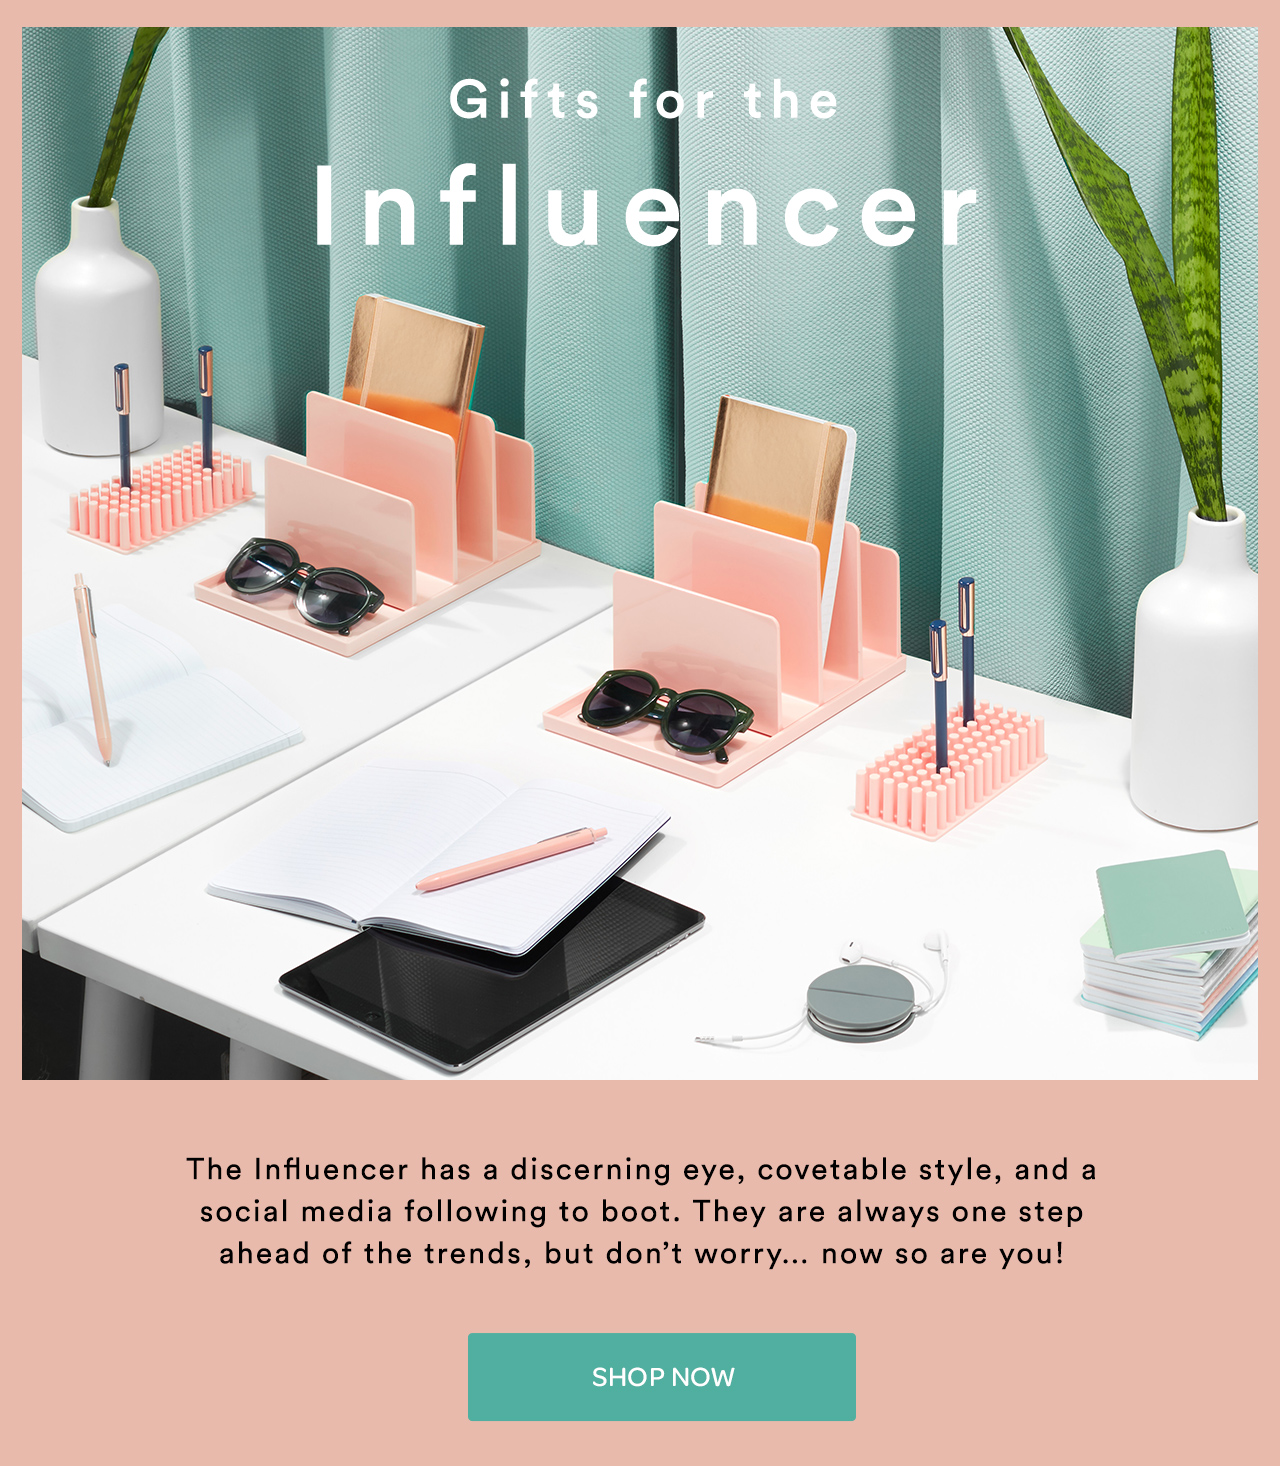 Gifts for The Influencer